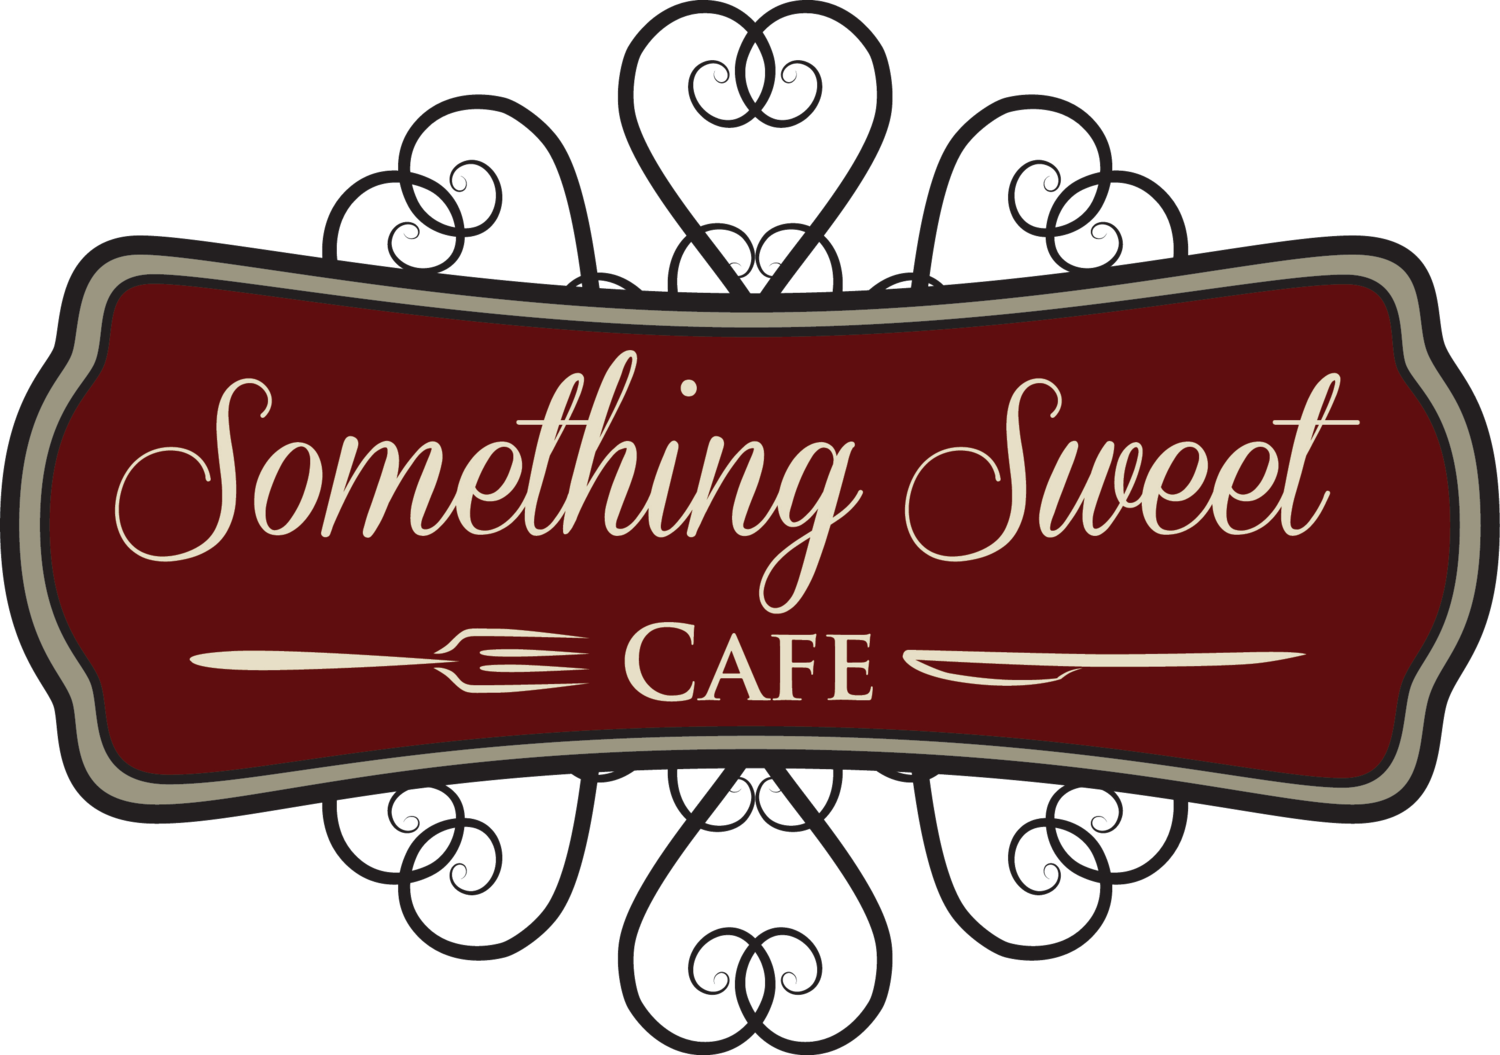 Cafe clipart outdoor cafe. Main something sweet